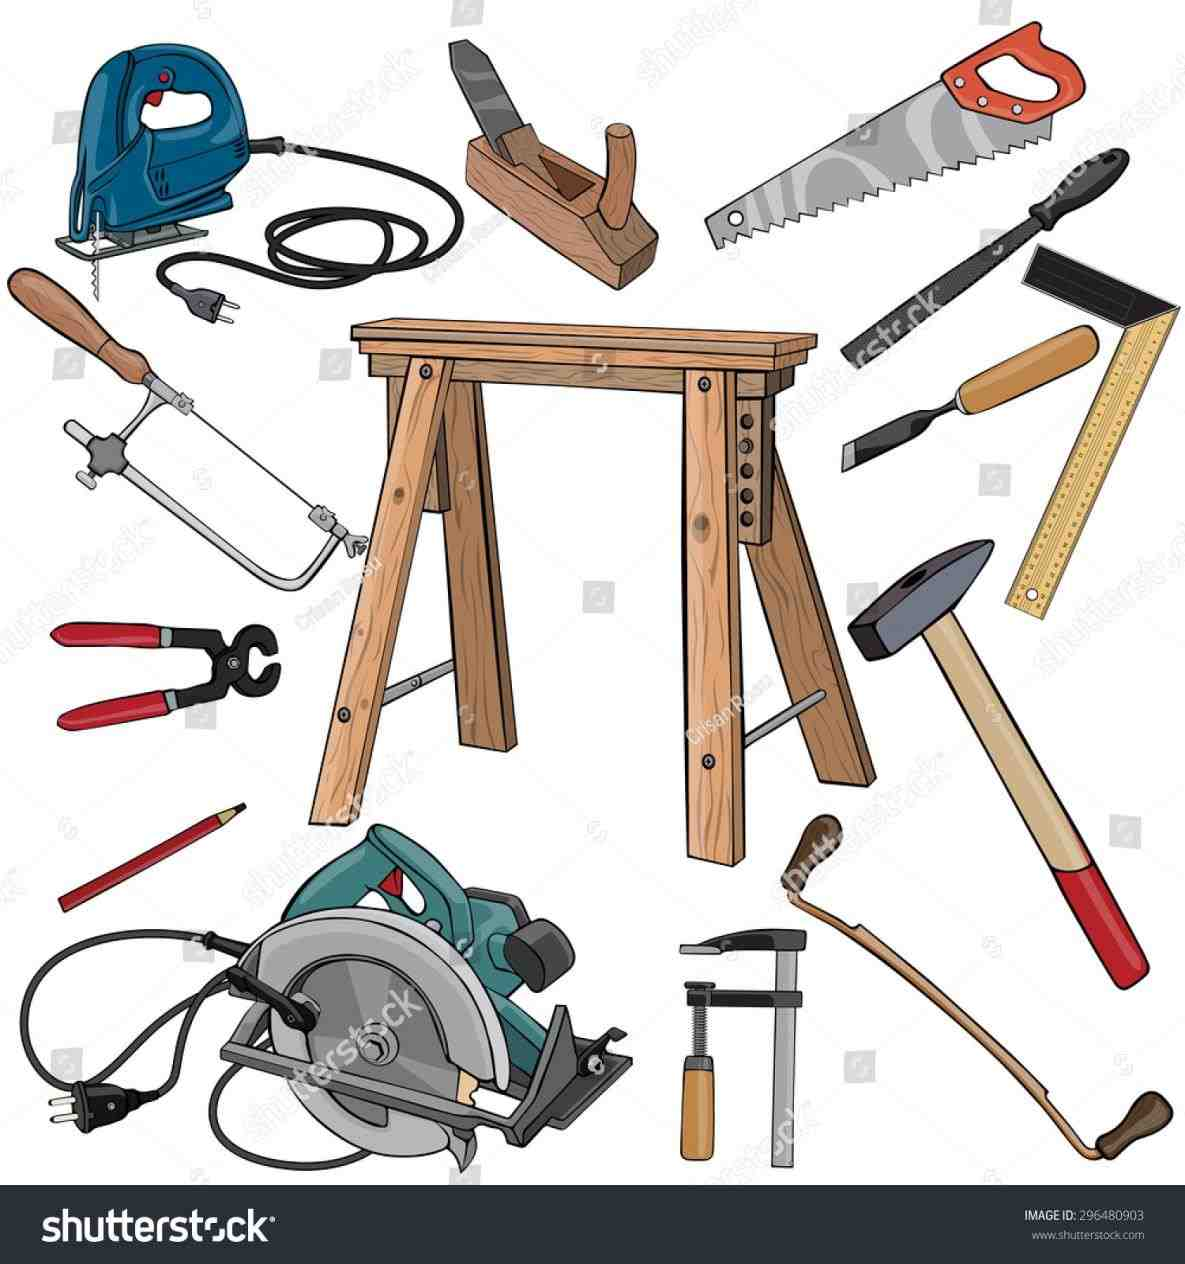 Woodworking Tools Clipart 7 Clipart Station